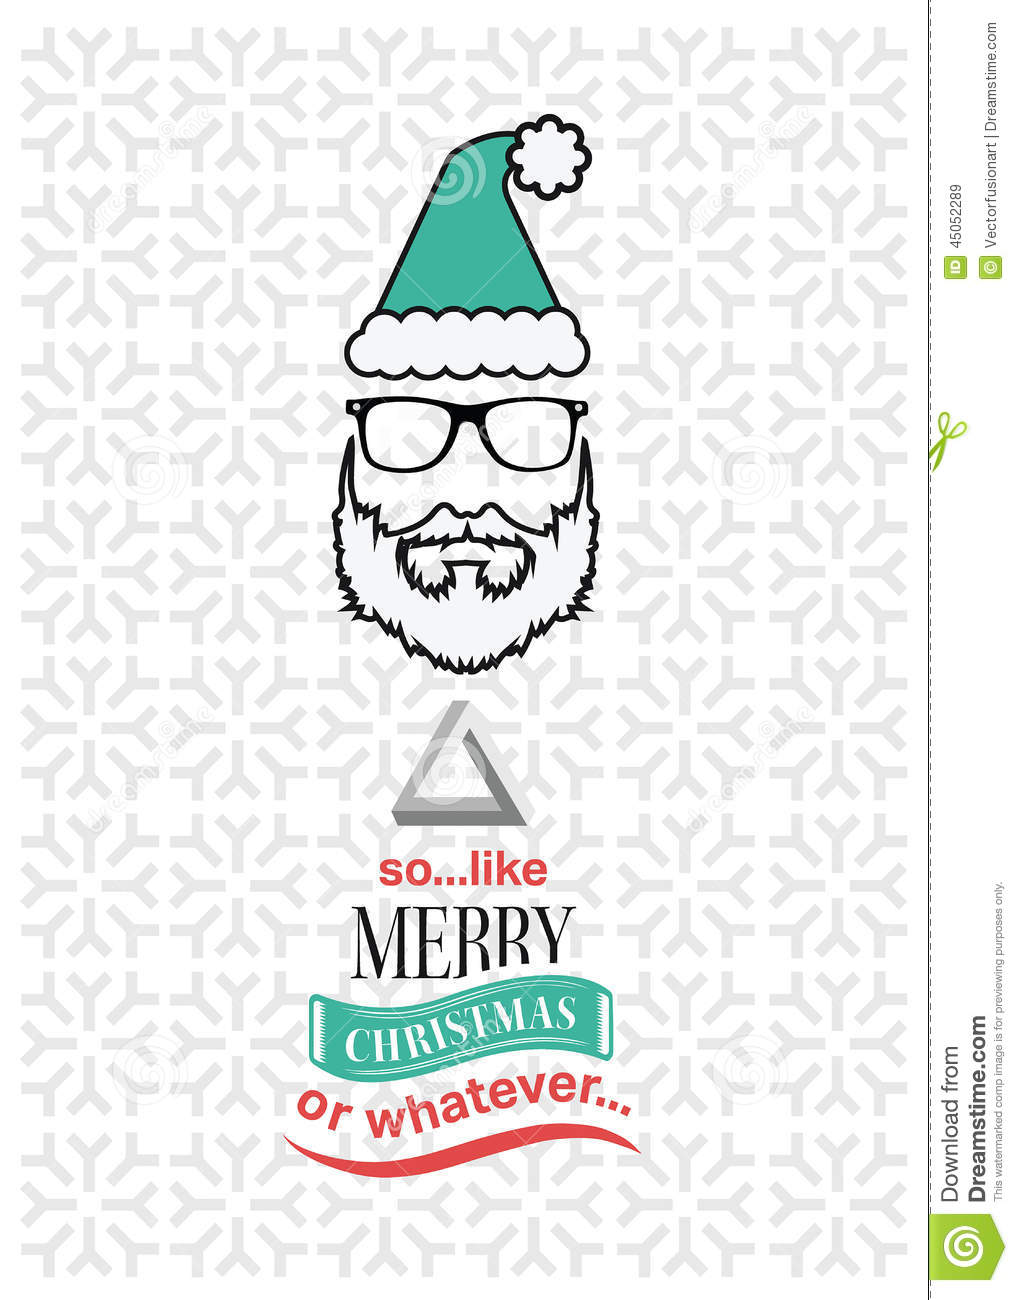 Hipster Christmas Vector With Sarcastic Message Stock Vector ...